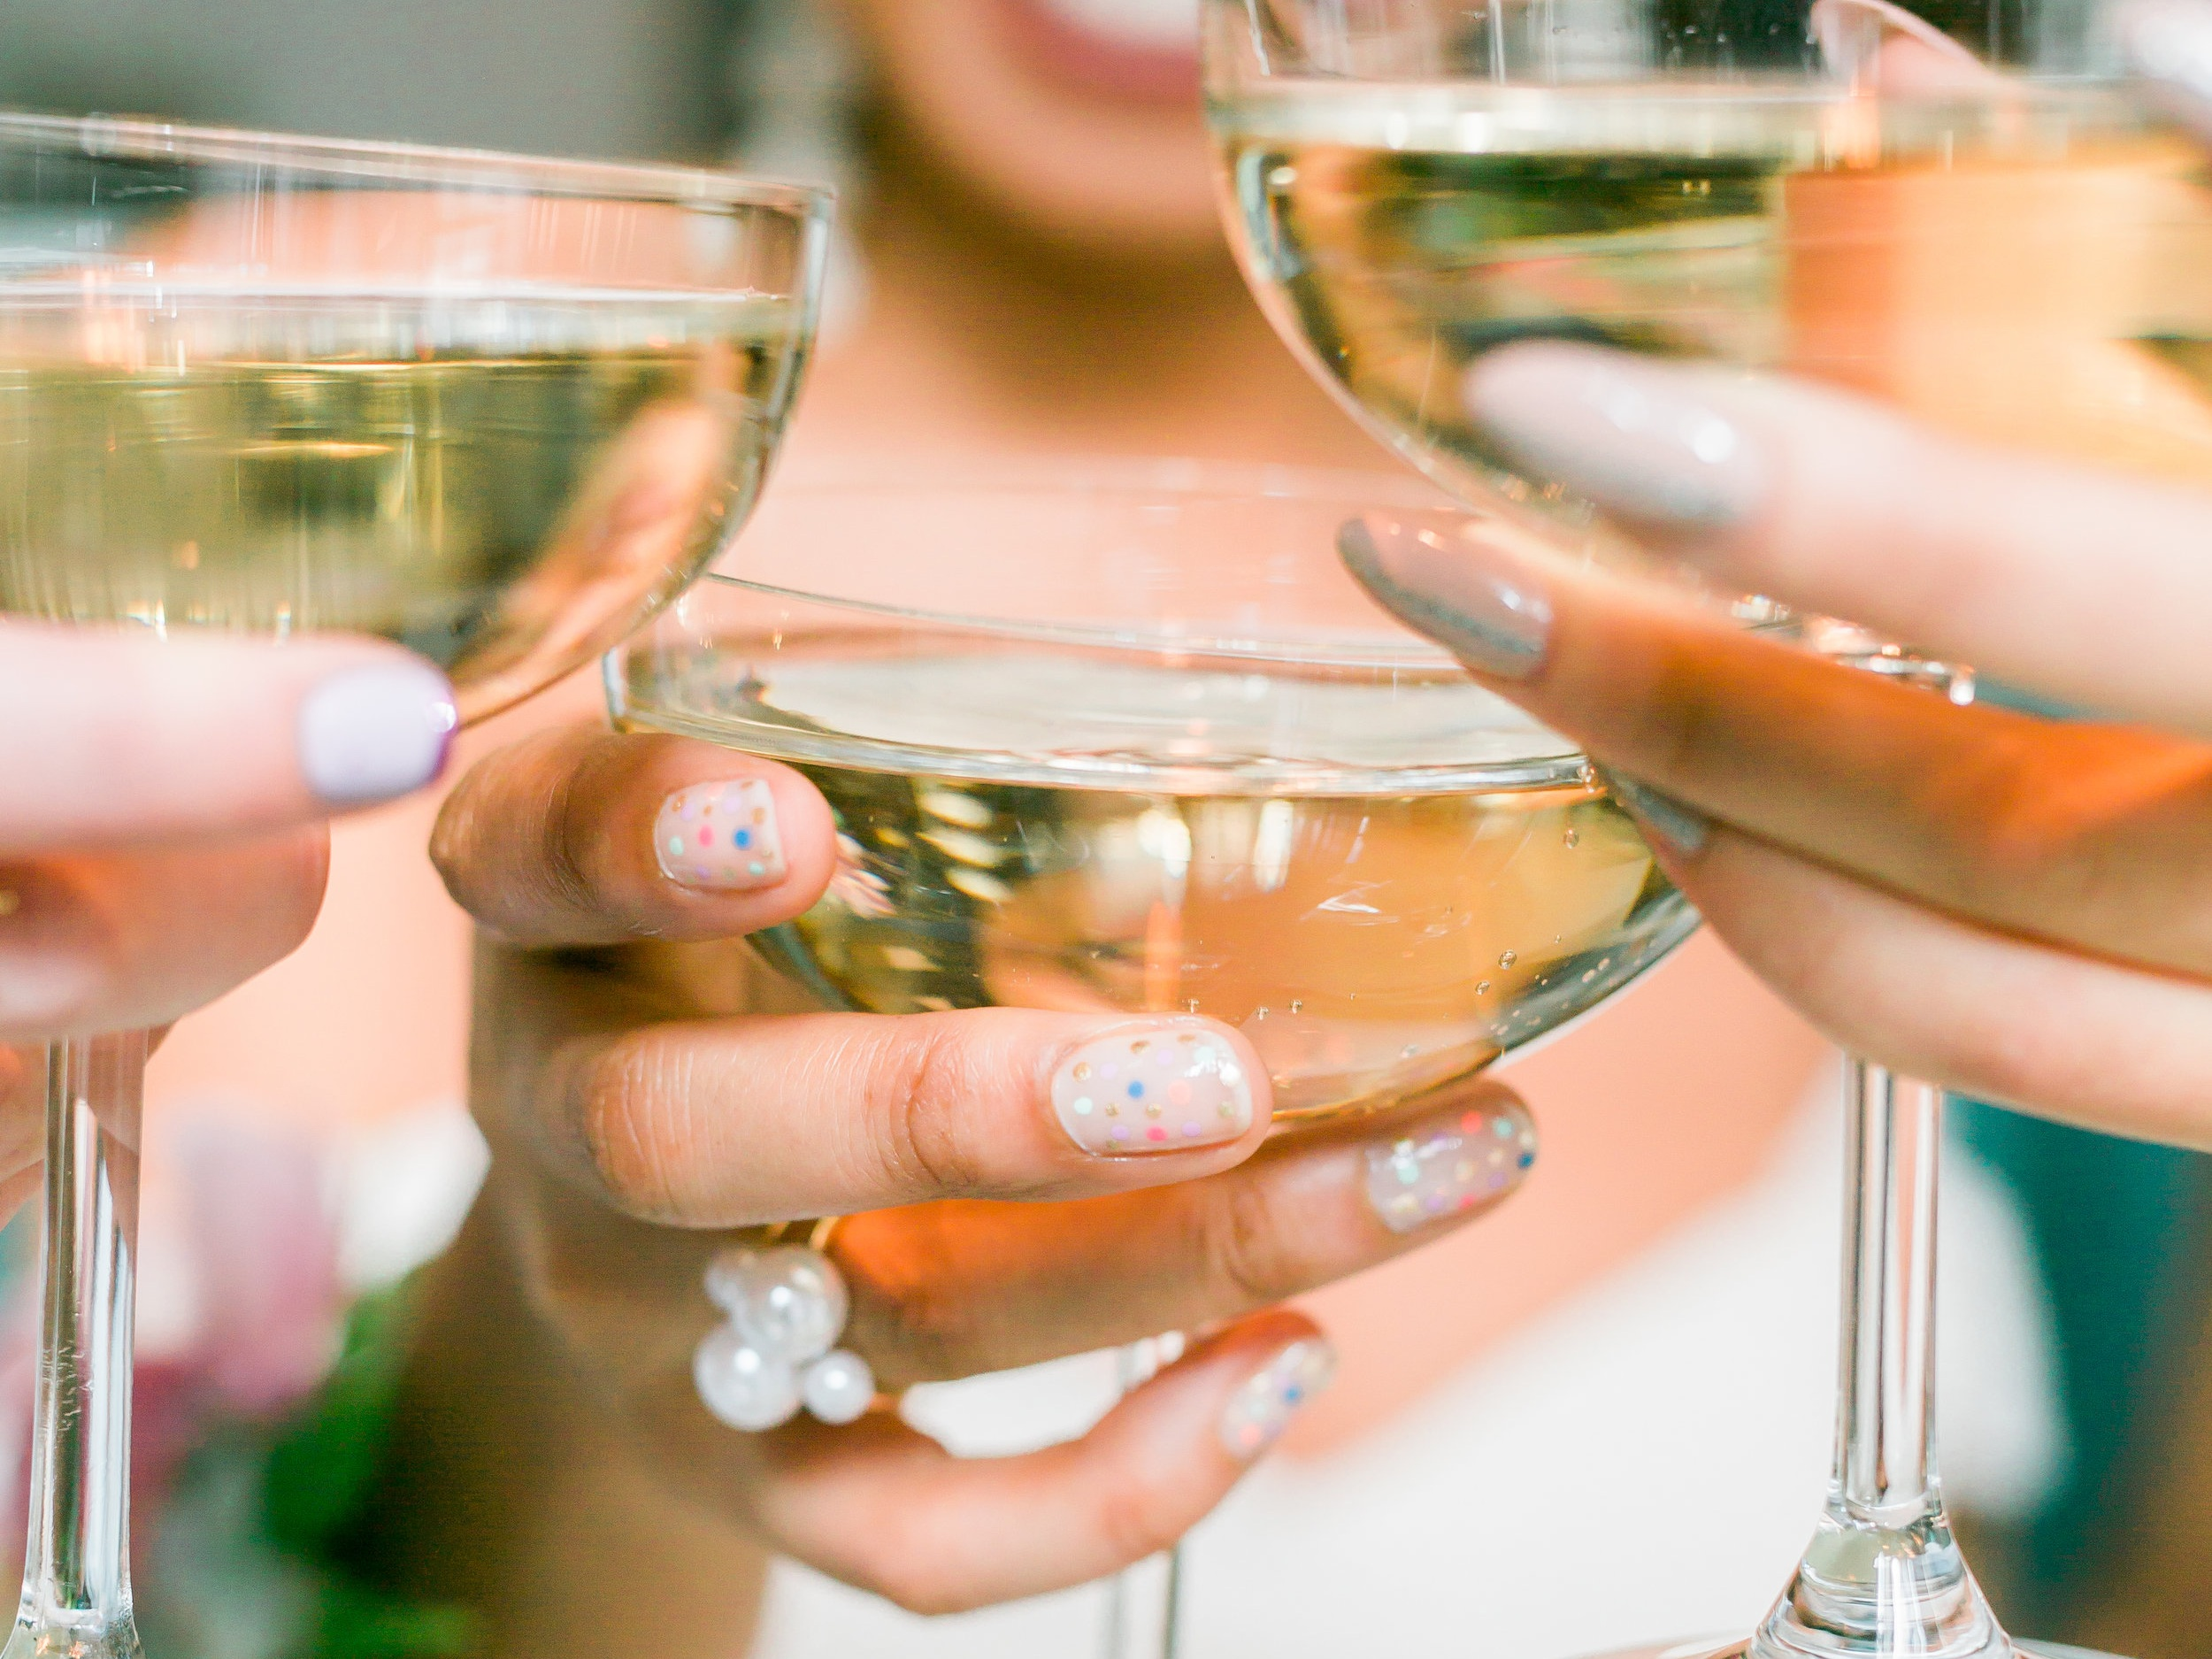 ON-SITE NAIL & CHAMPAGNE EXPERIENCES - Get glam with The Nail & Champagne Bar